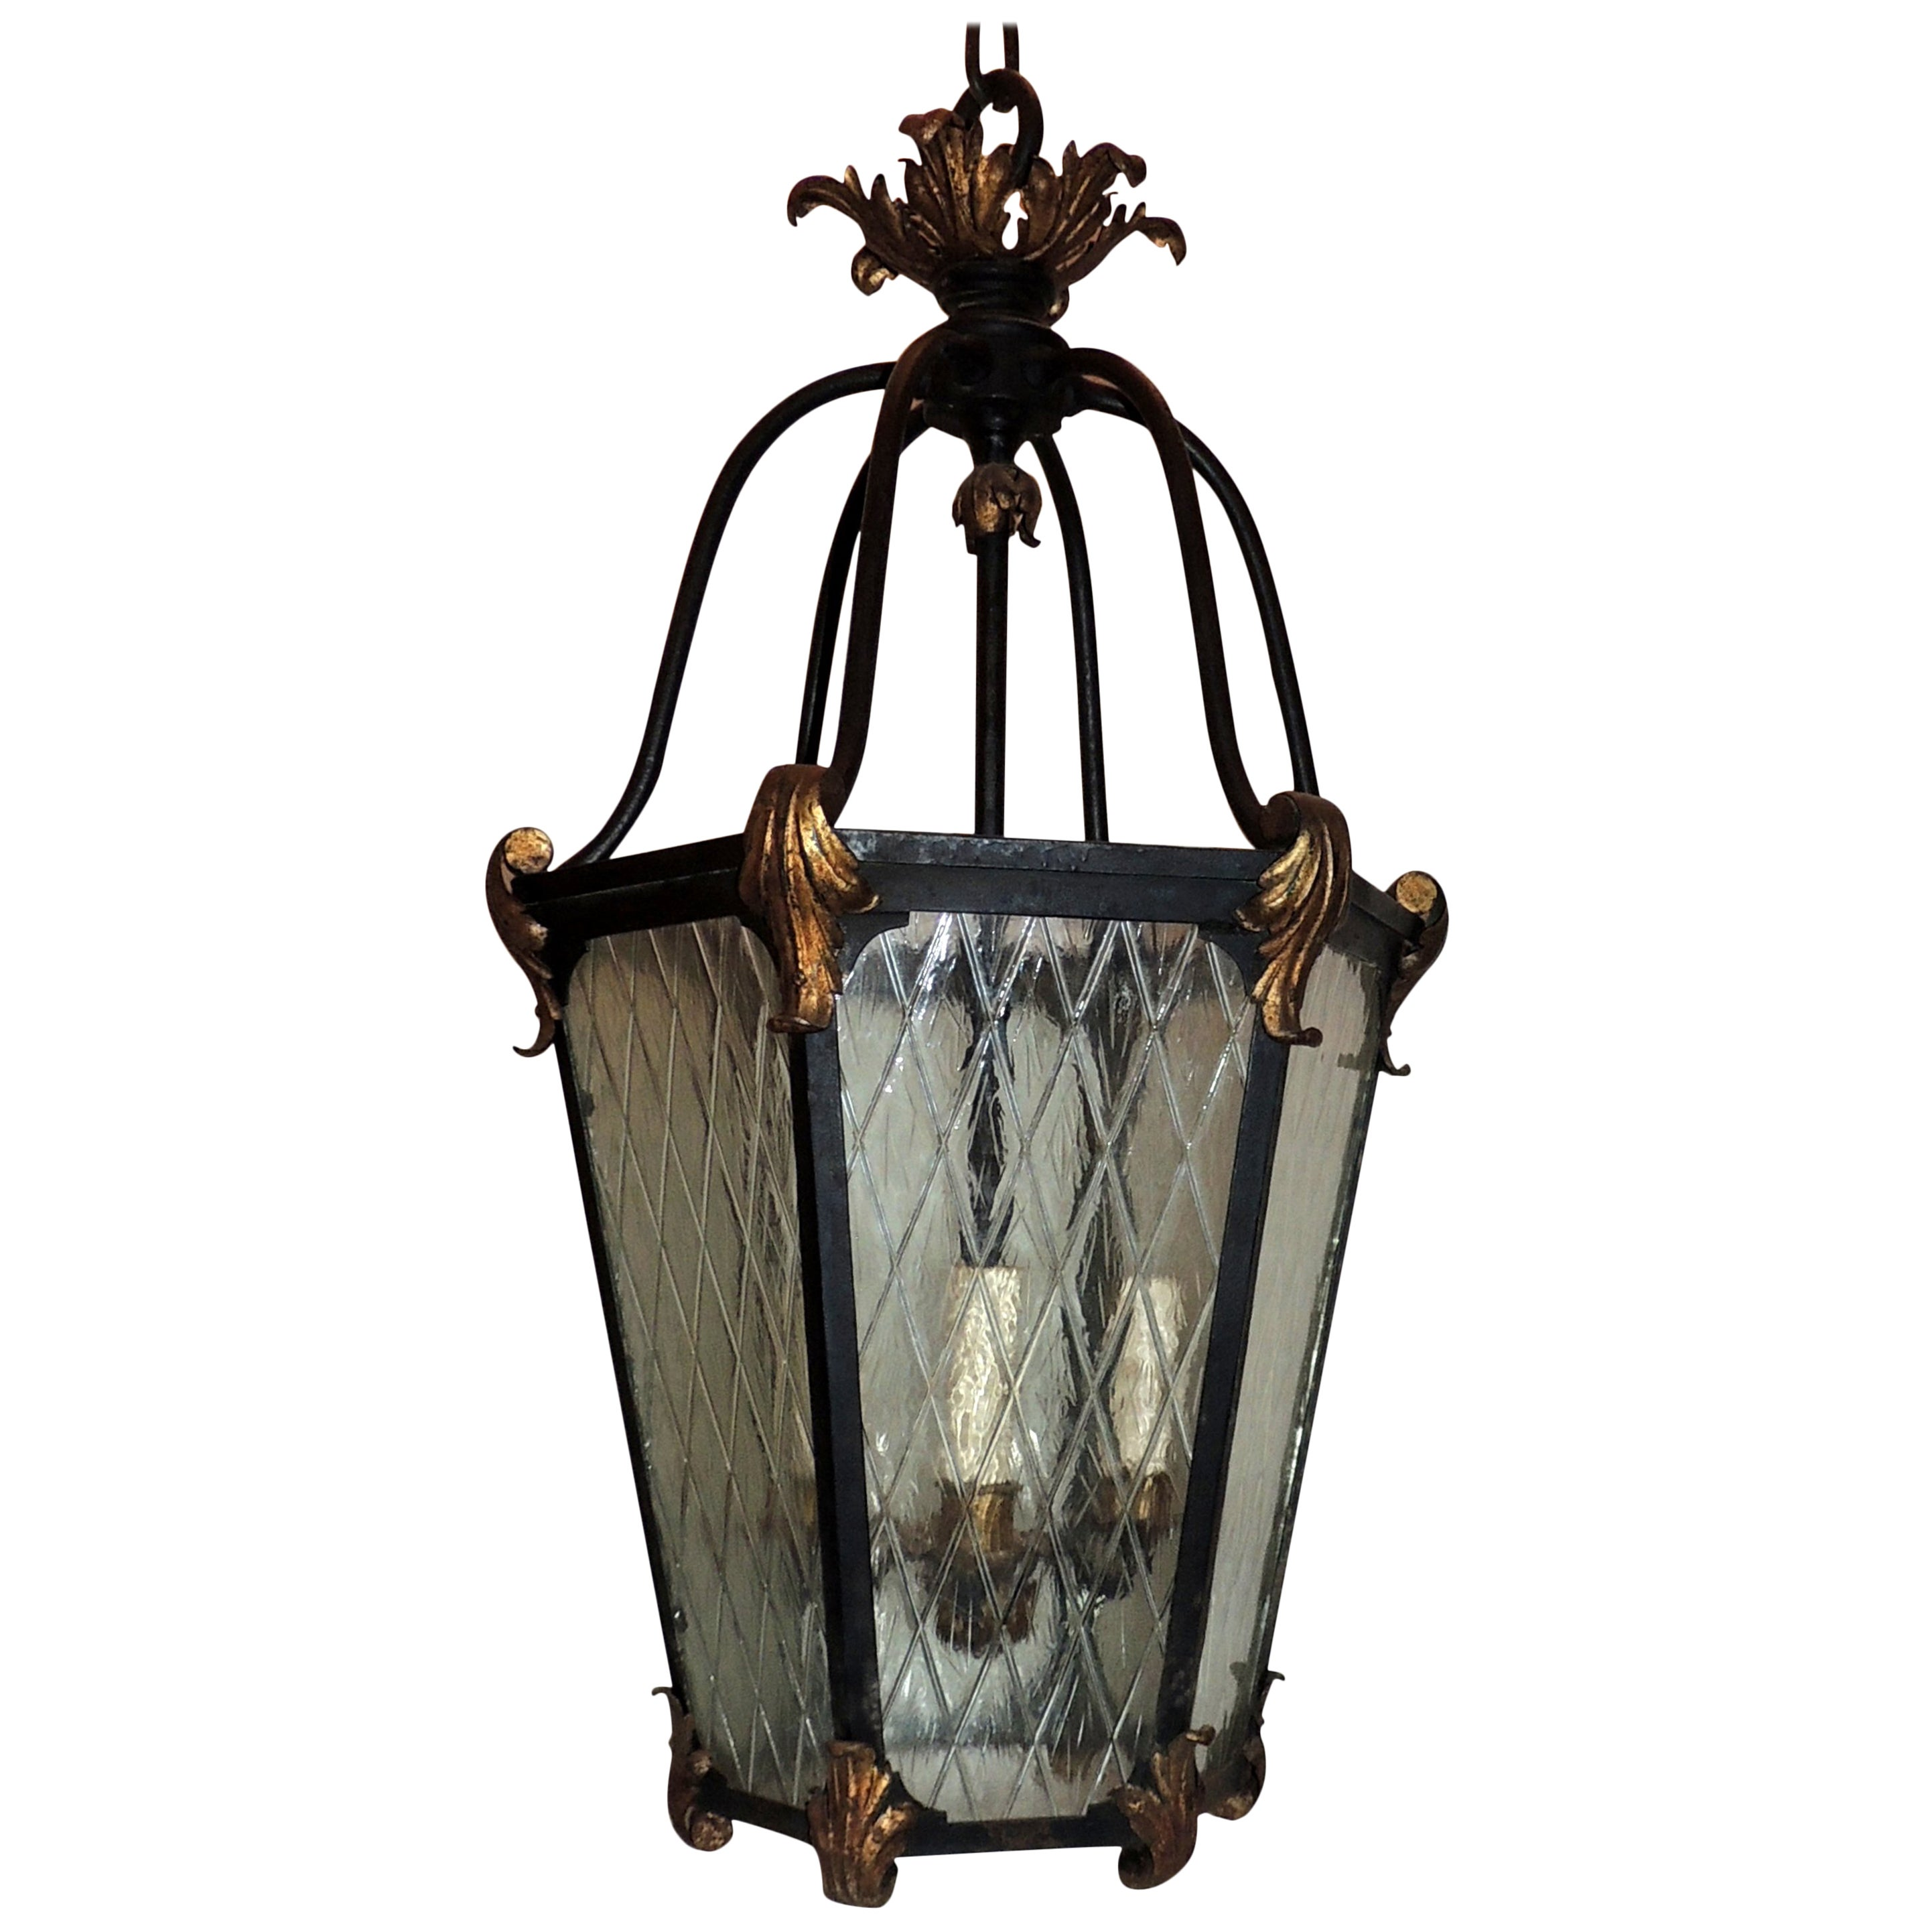 Large country french wrought iron lattice glass lantern pendent exterior fixture